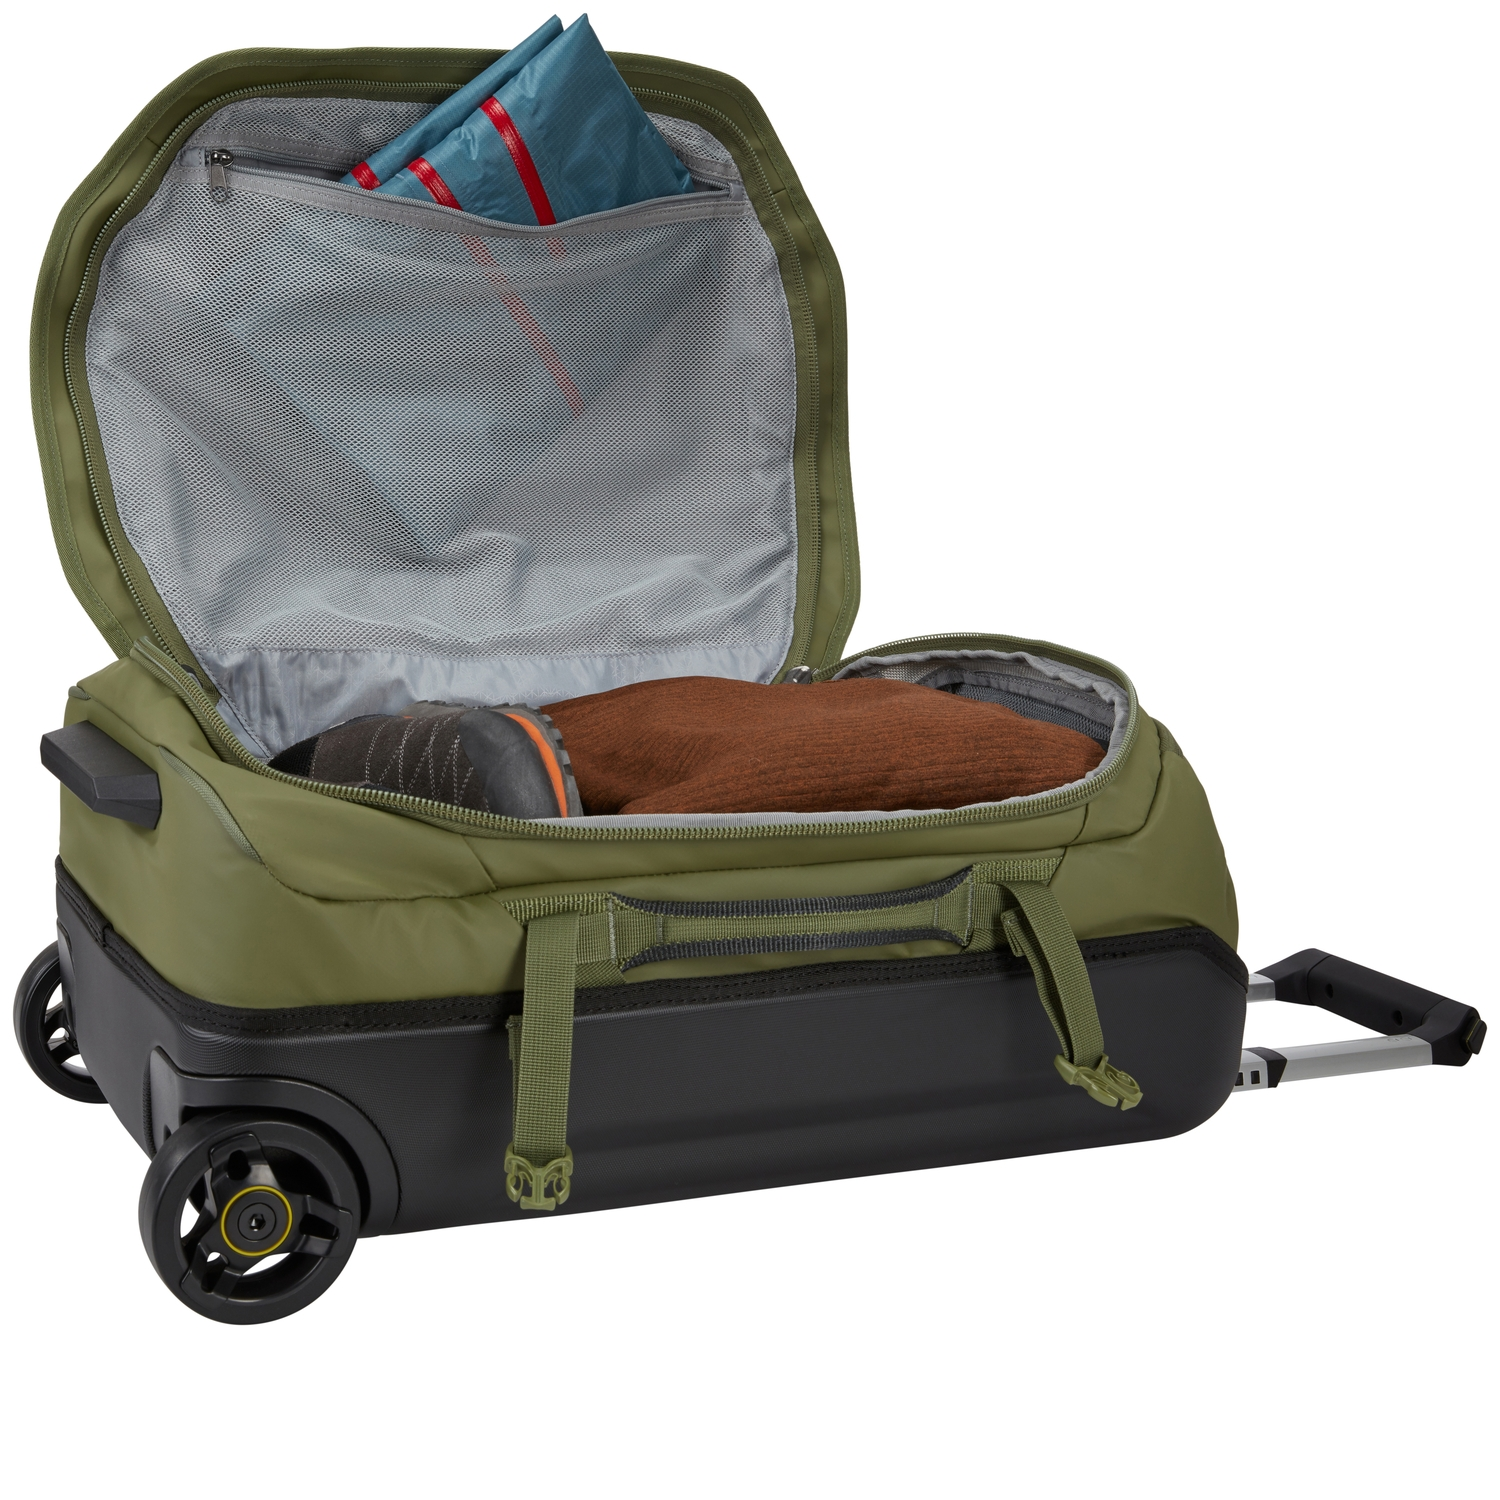 Thule Chasm Carry On 55cm/22 - Olivine